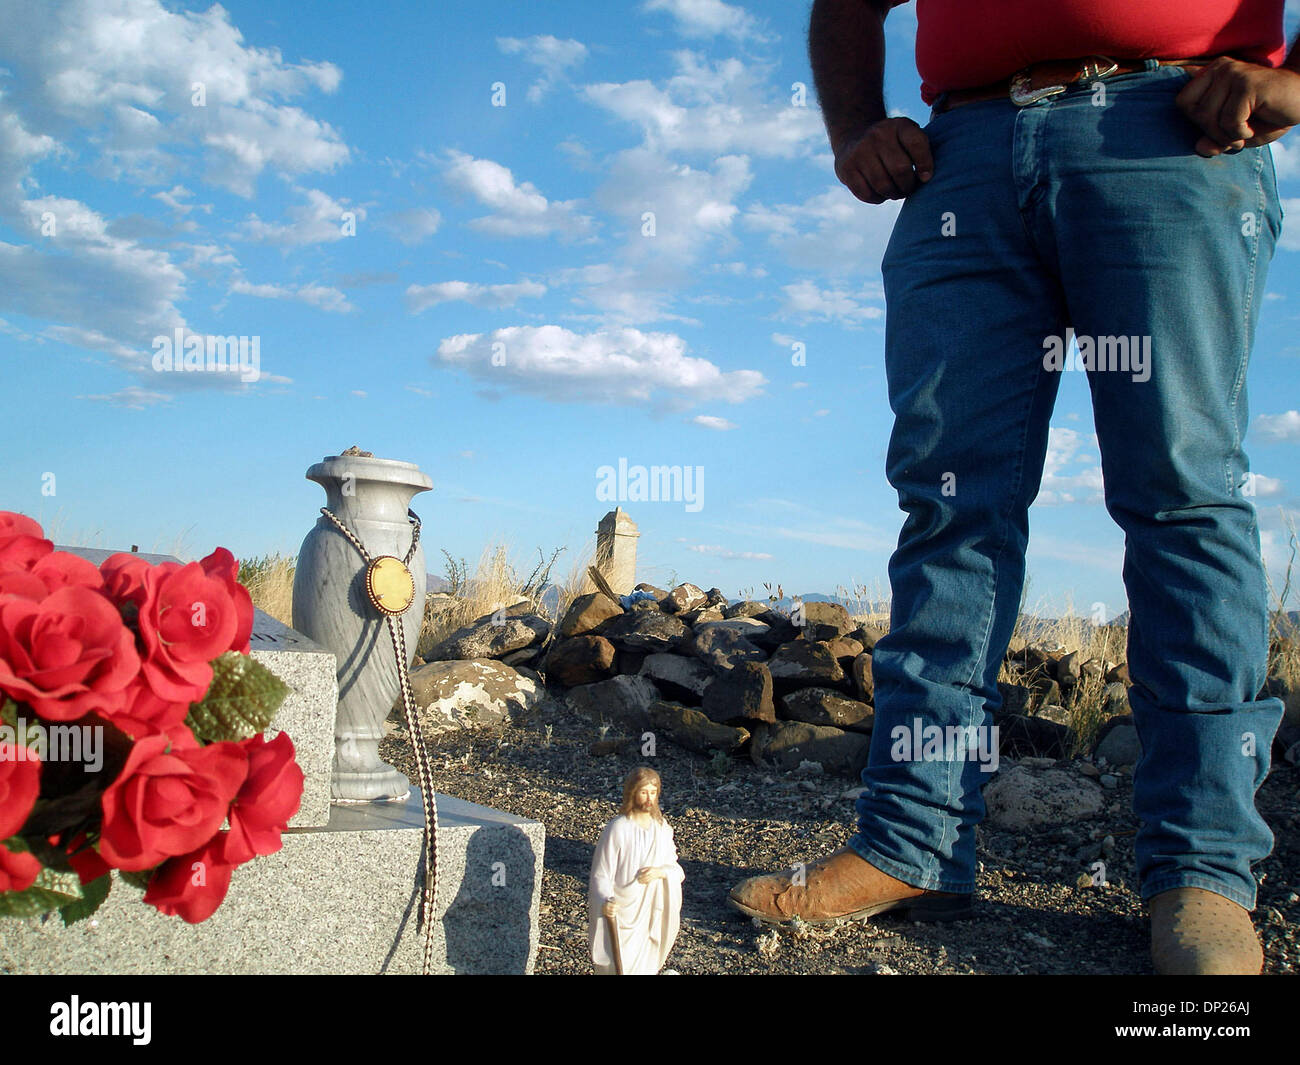 May 18, 2006; Redford, TX, USA; A bolo tie that was owned by Esequiel Hernandez Jr. hangs at his grave. Hernandez was shot to death May 20, 1997 by a U.S. Marine working with the U.S. Border Patrol near the village of Redford, Texas.Ê Mandatory Credit: Photo by Dane Schiller/San Antonio Express-News/ZUMA Press. (©) Copyright 2006 by San Antonio Express-News - Stock Image